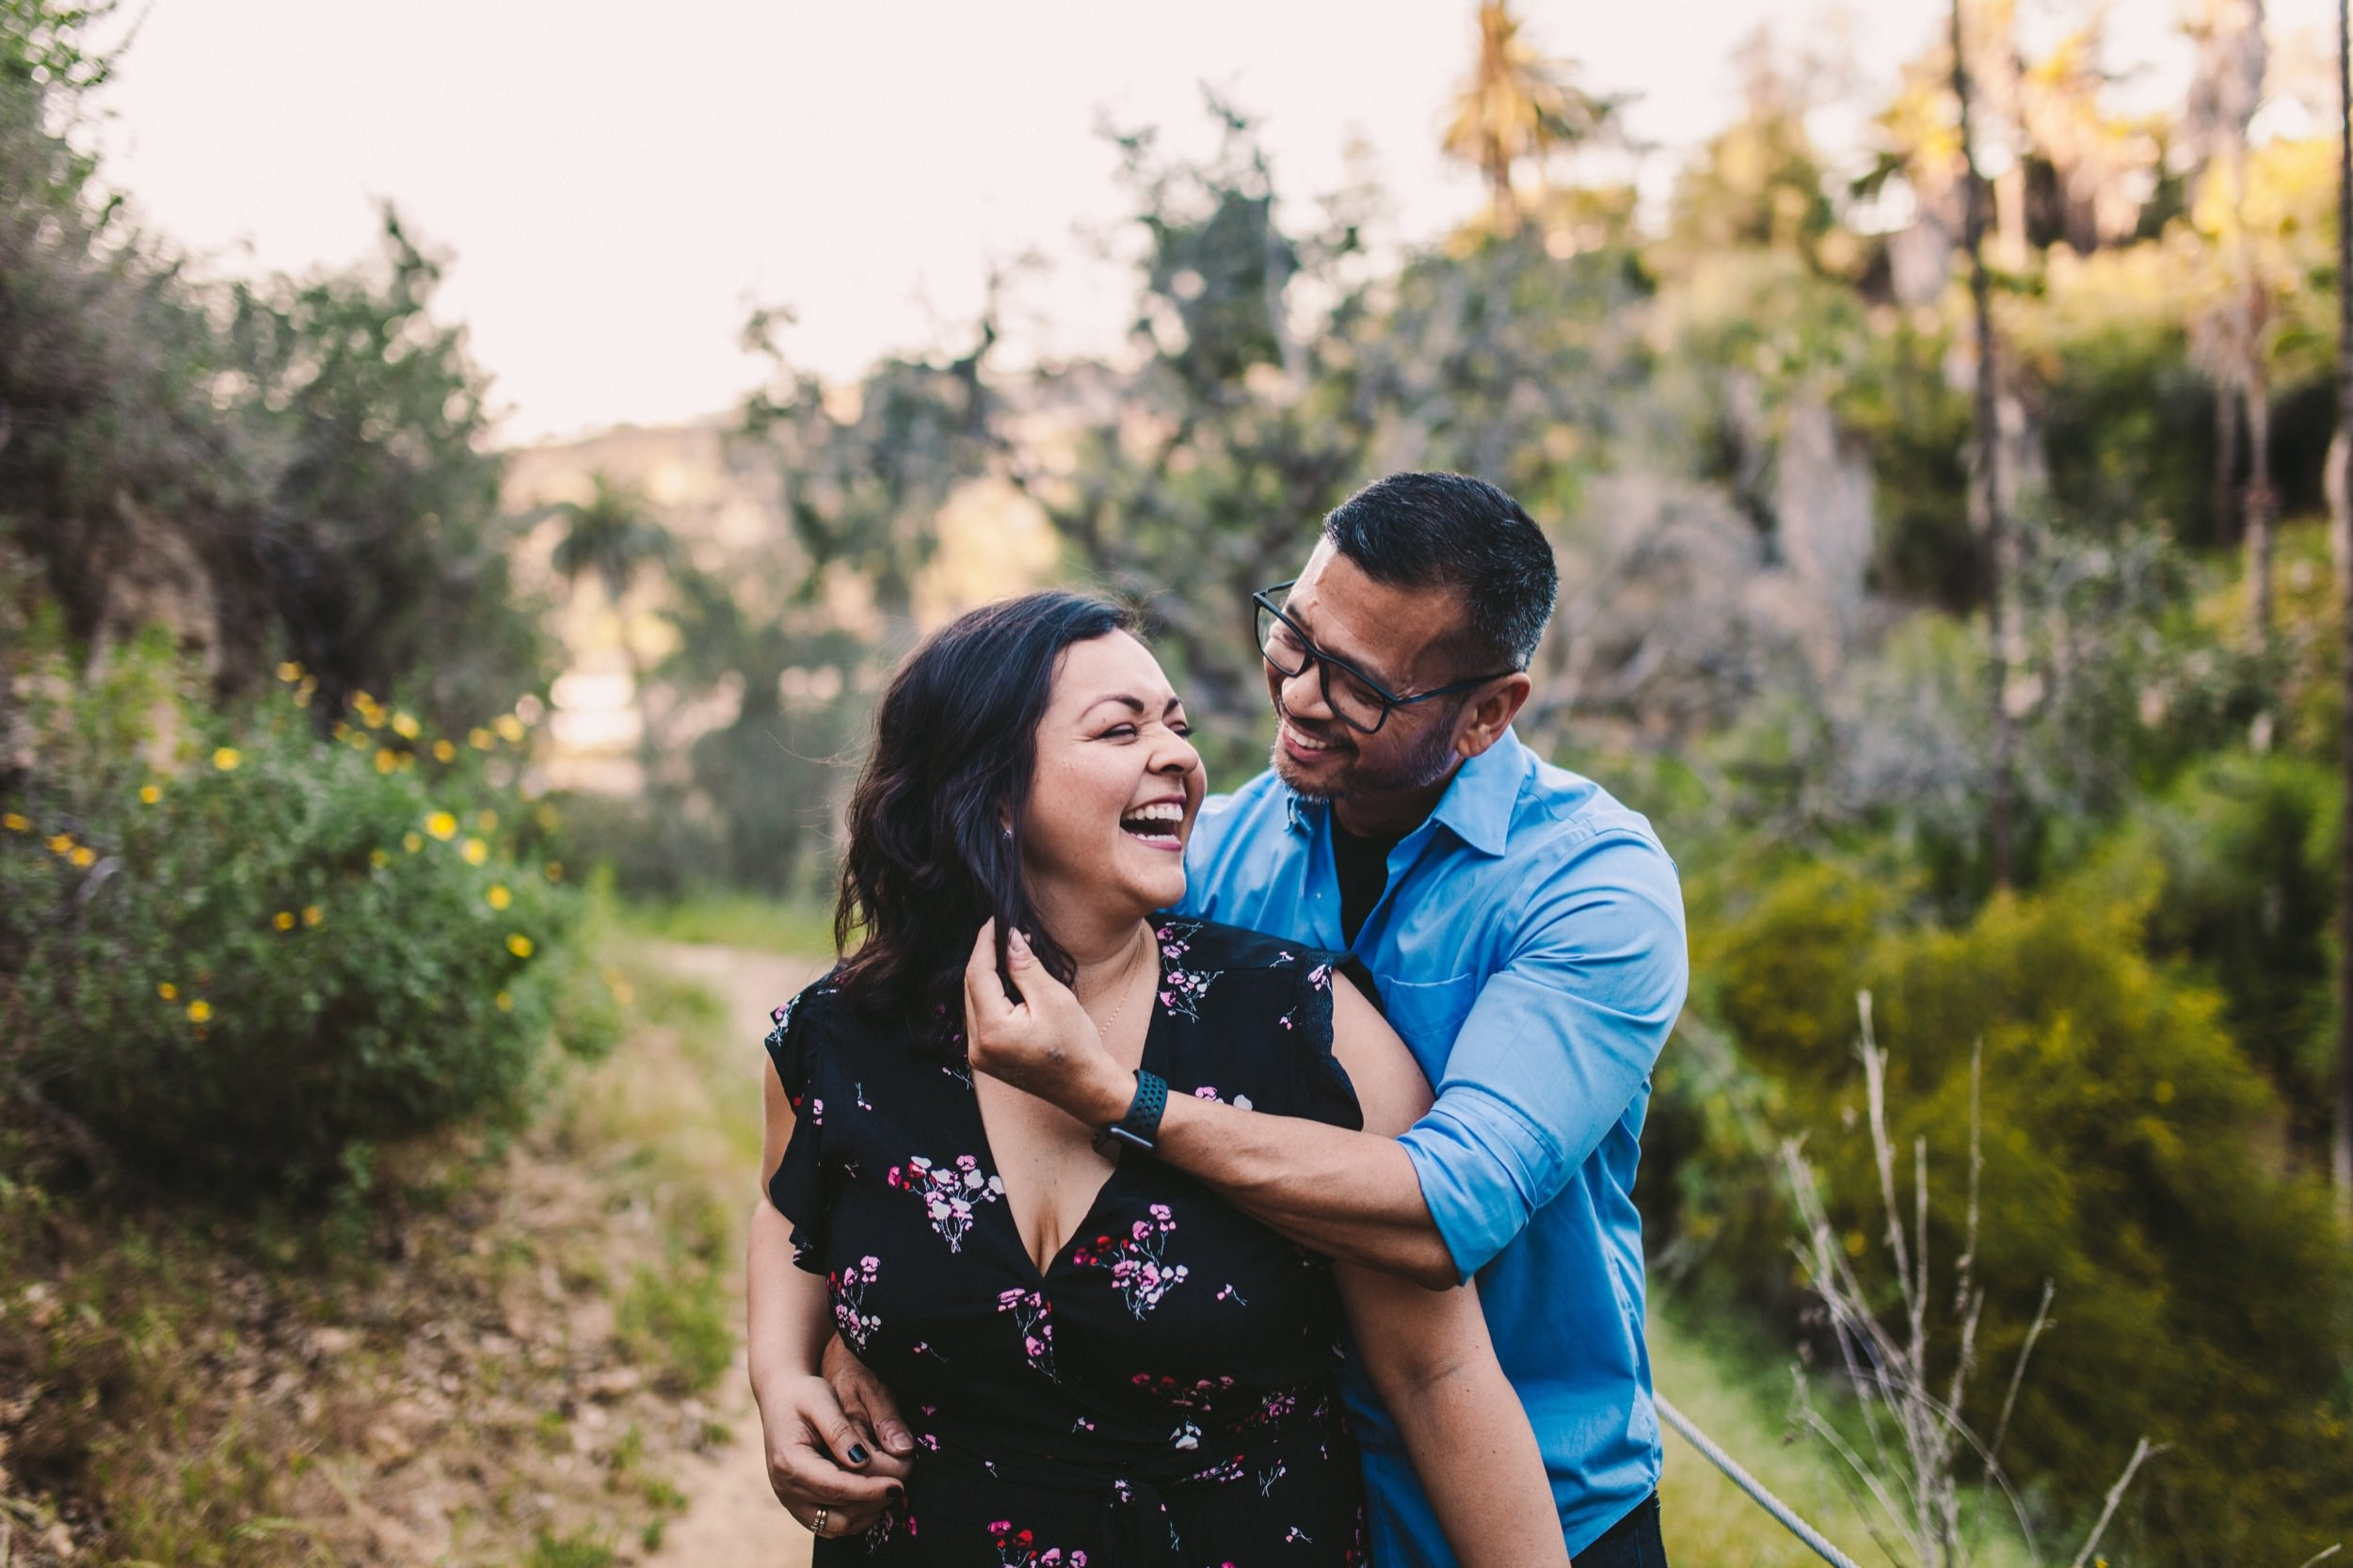 Presidio Park San Diego Engagement Photography Session-23.jpg